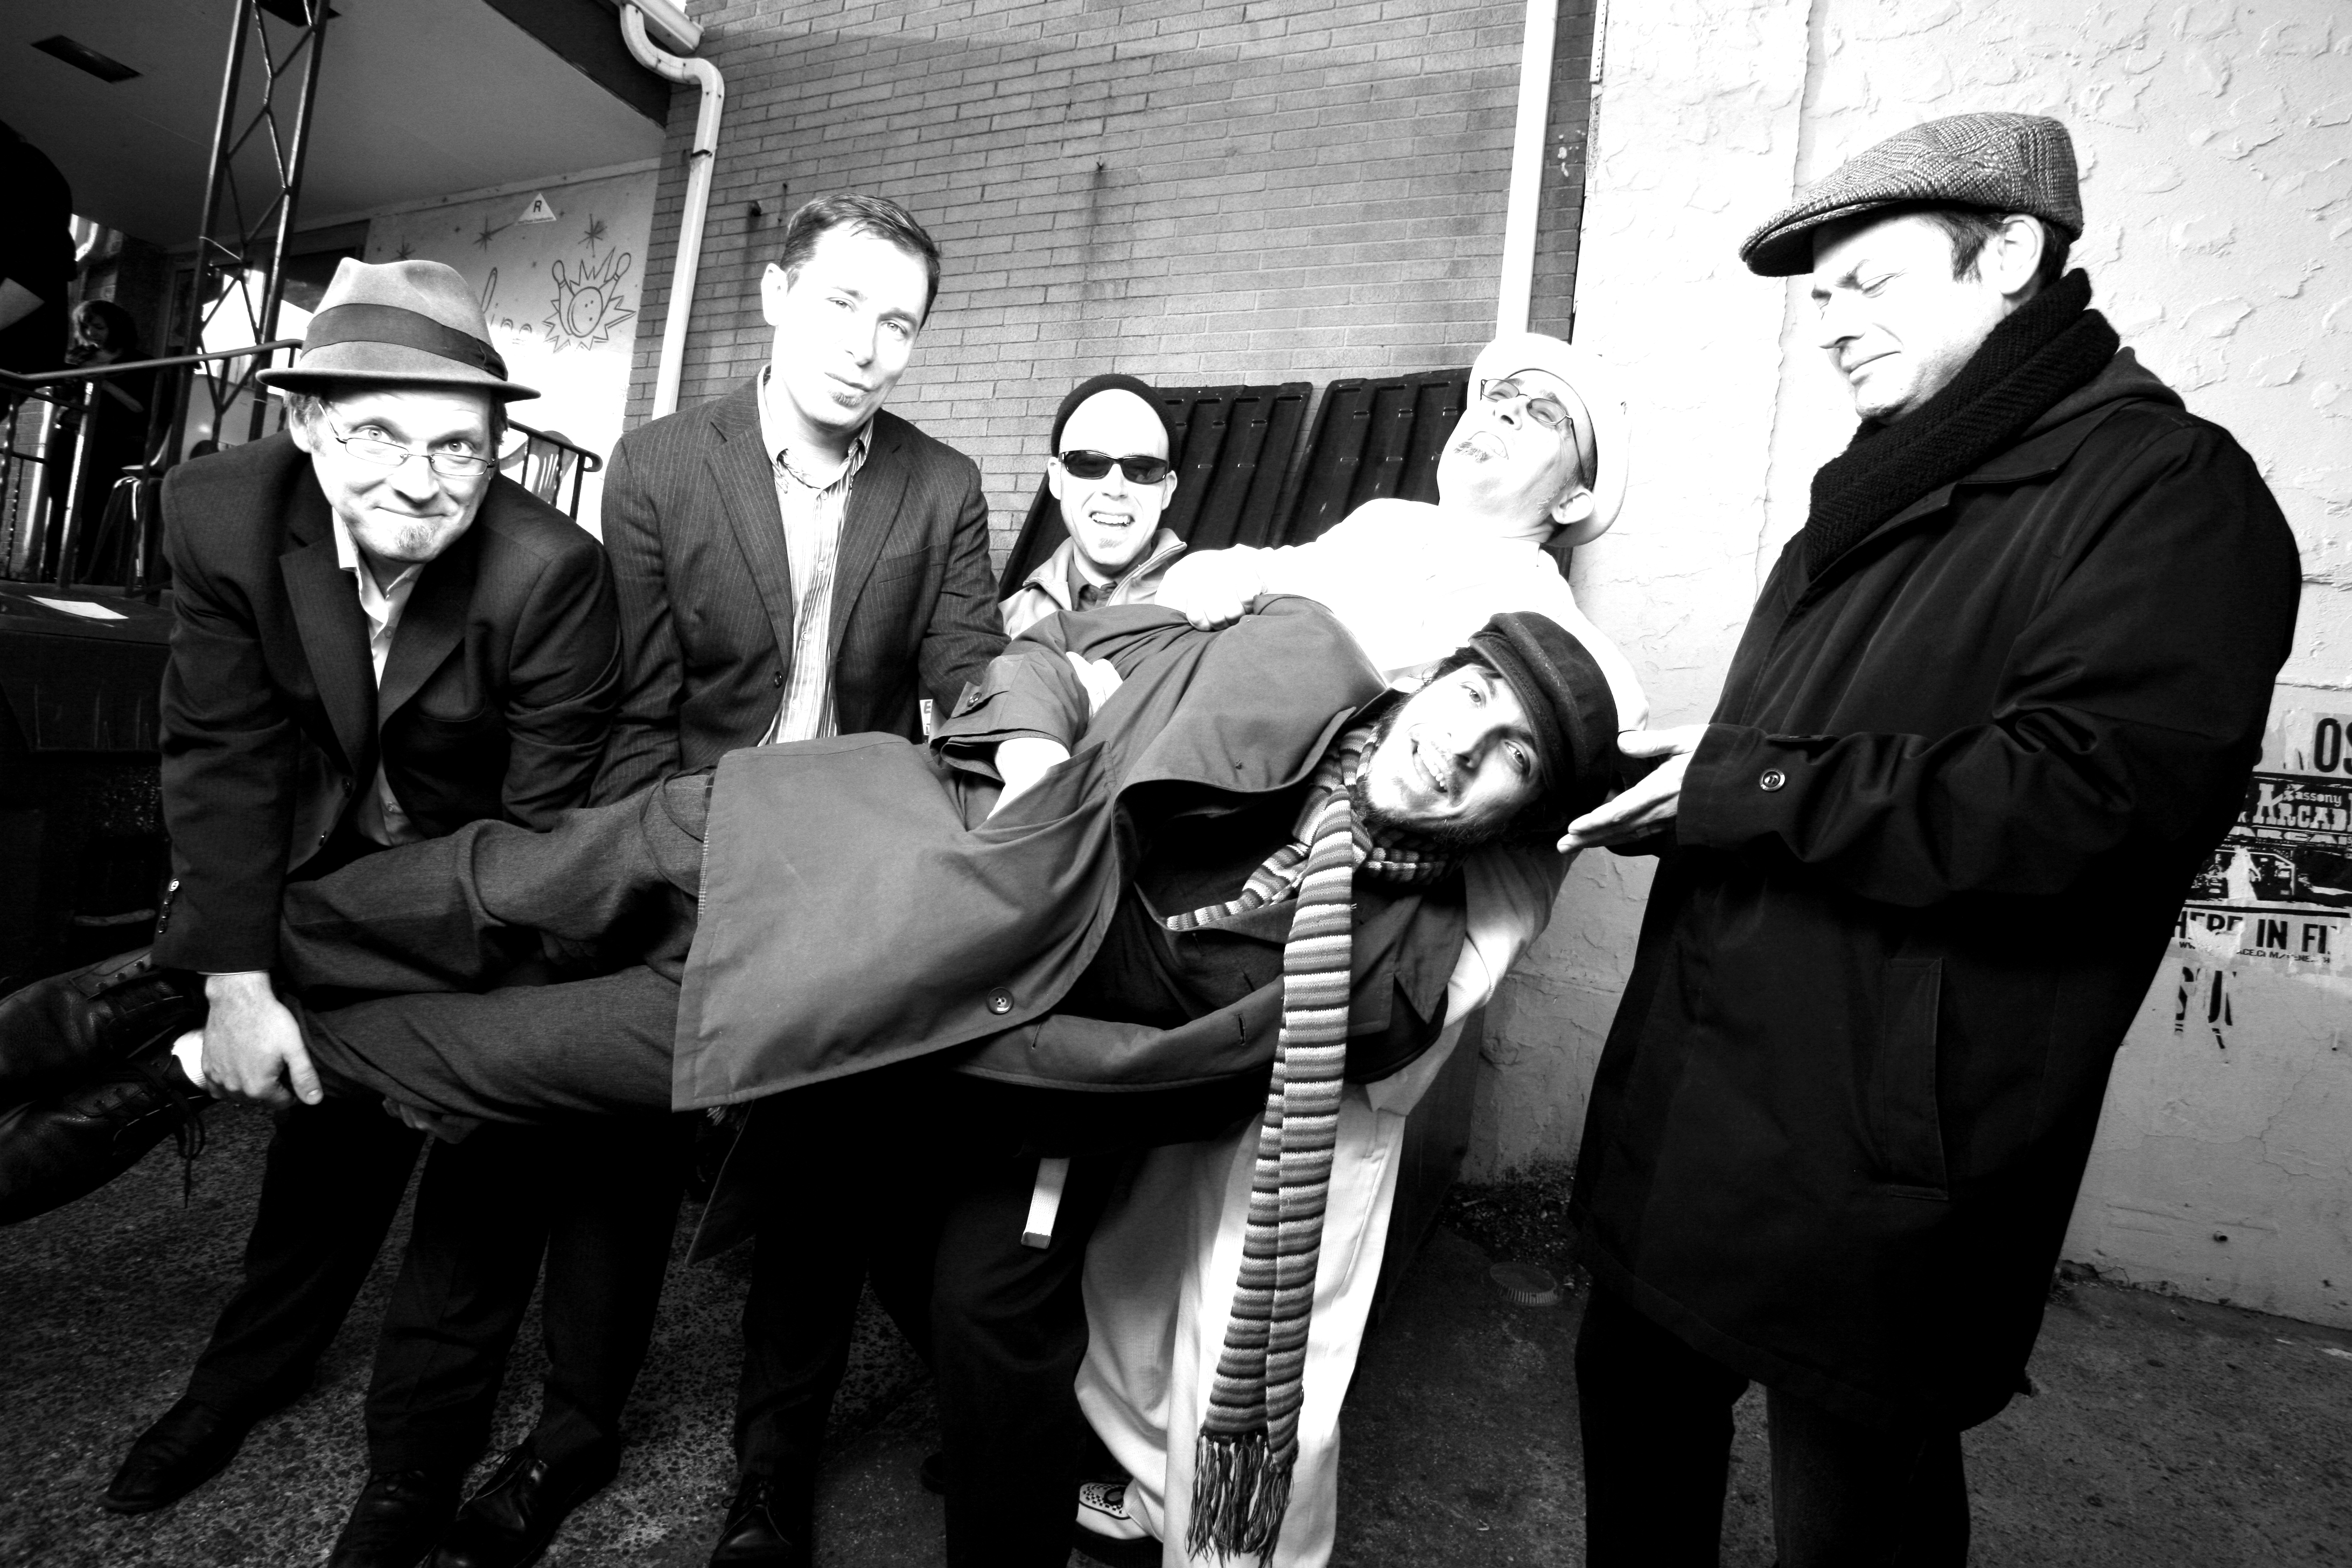 the slackers nyc ska press photo